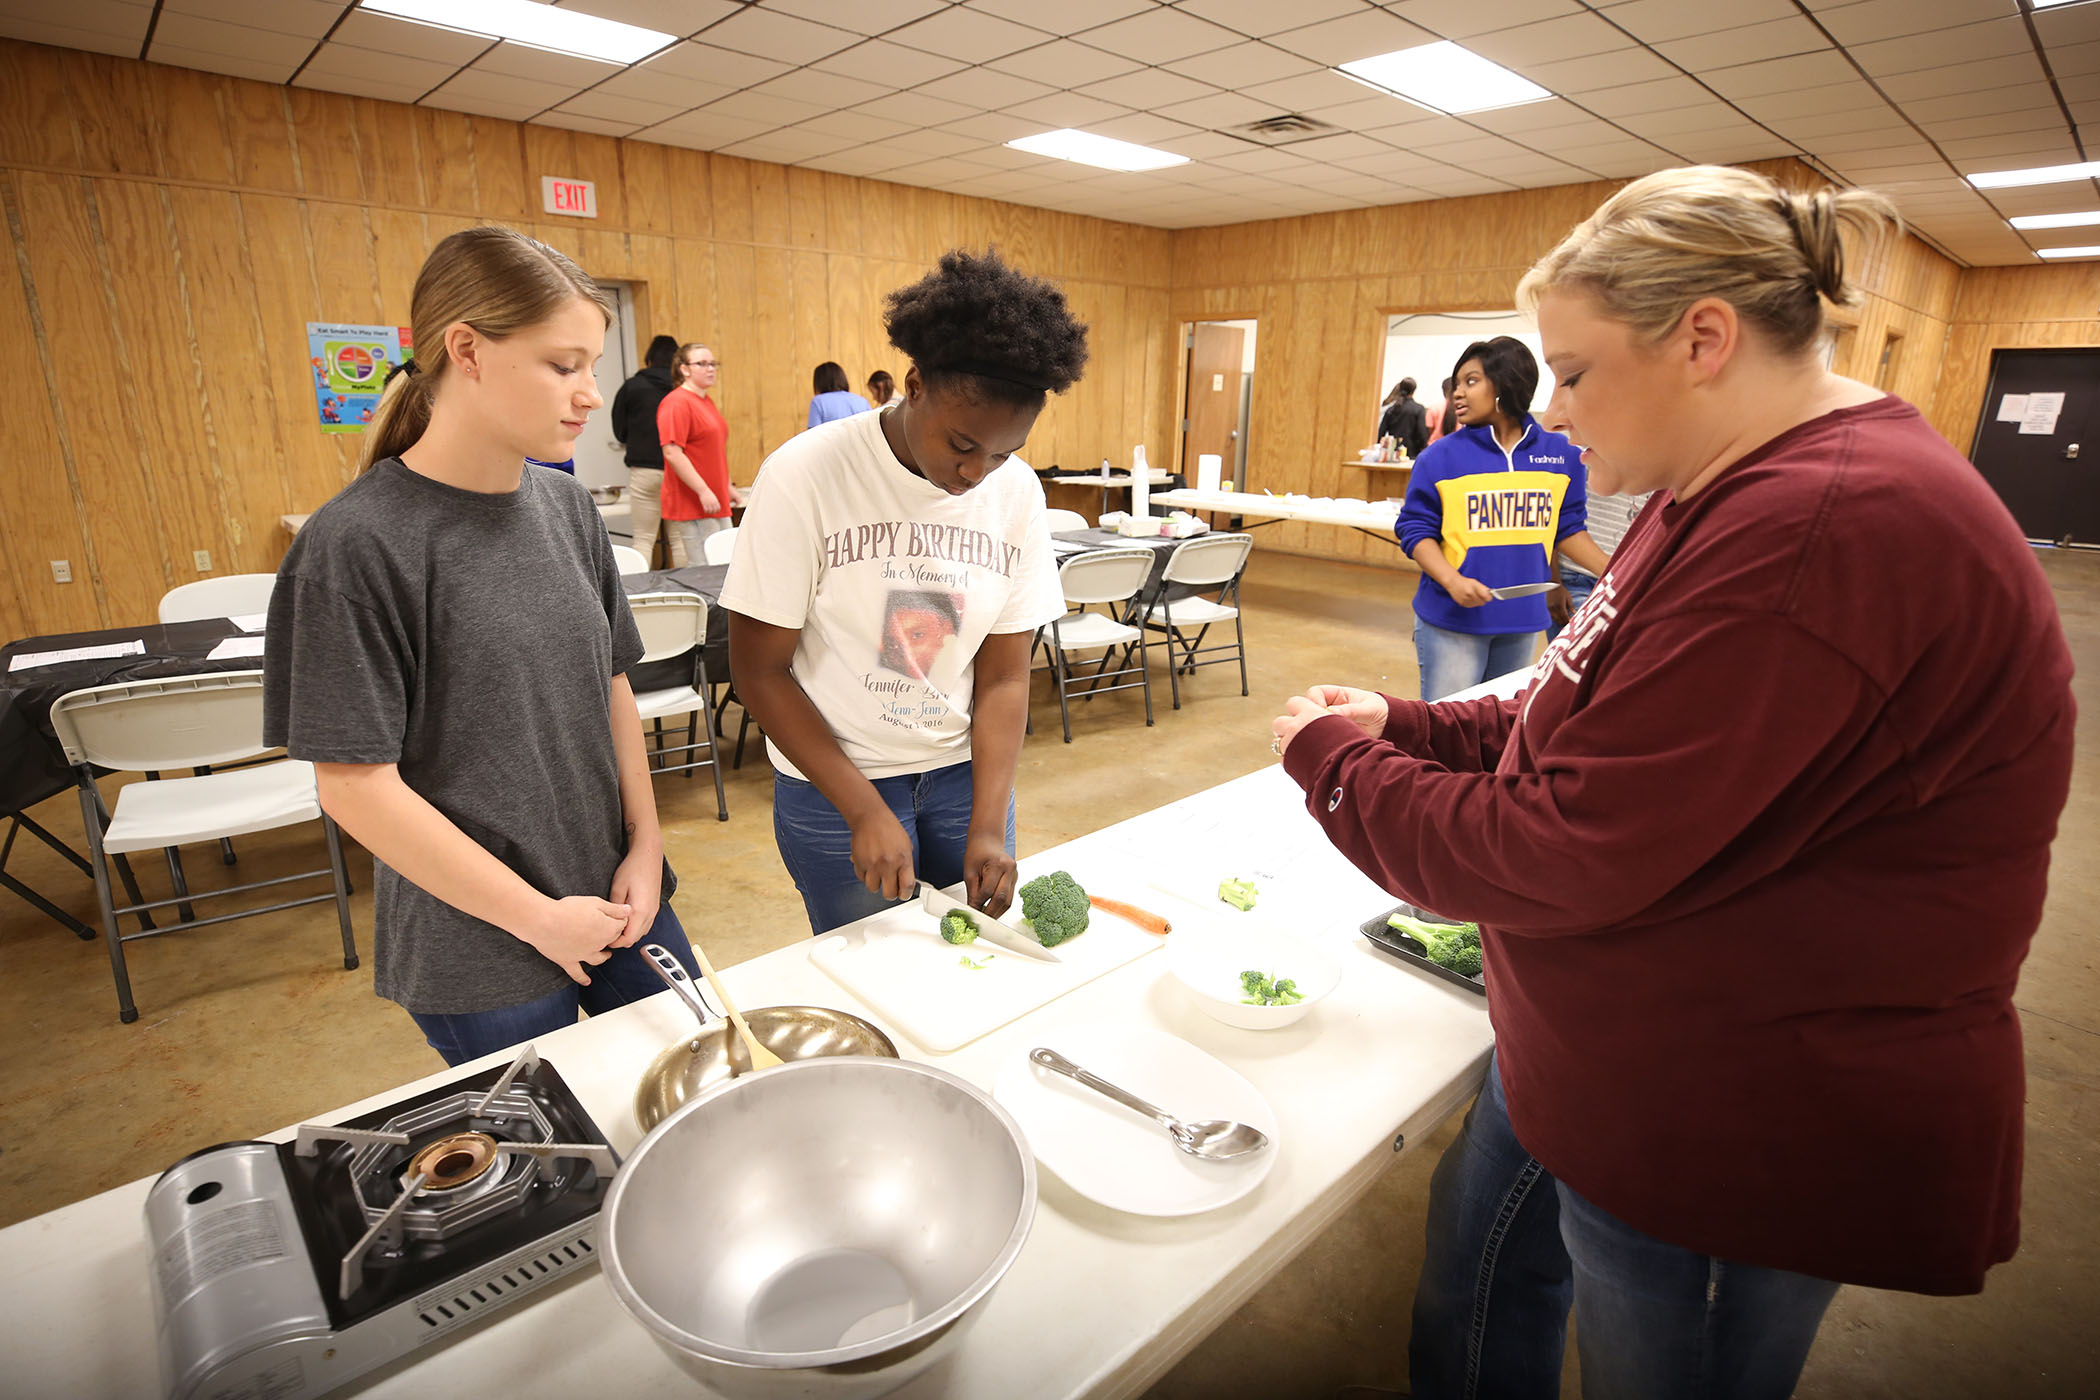 ECE students prepare a meal together.